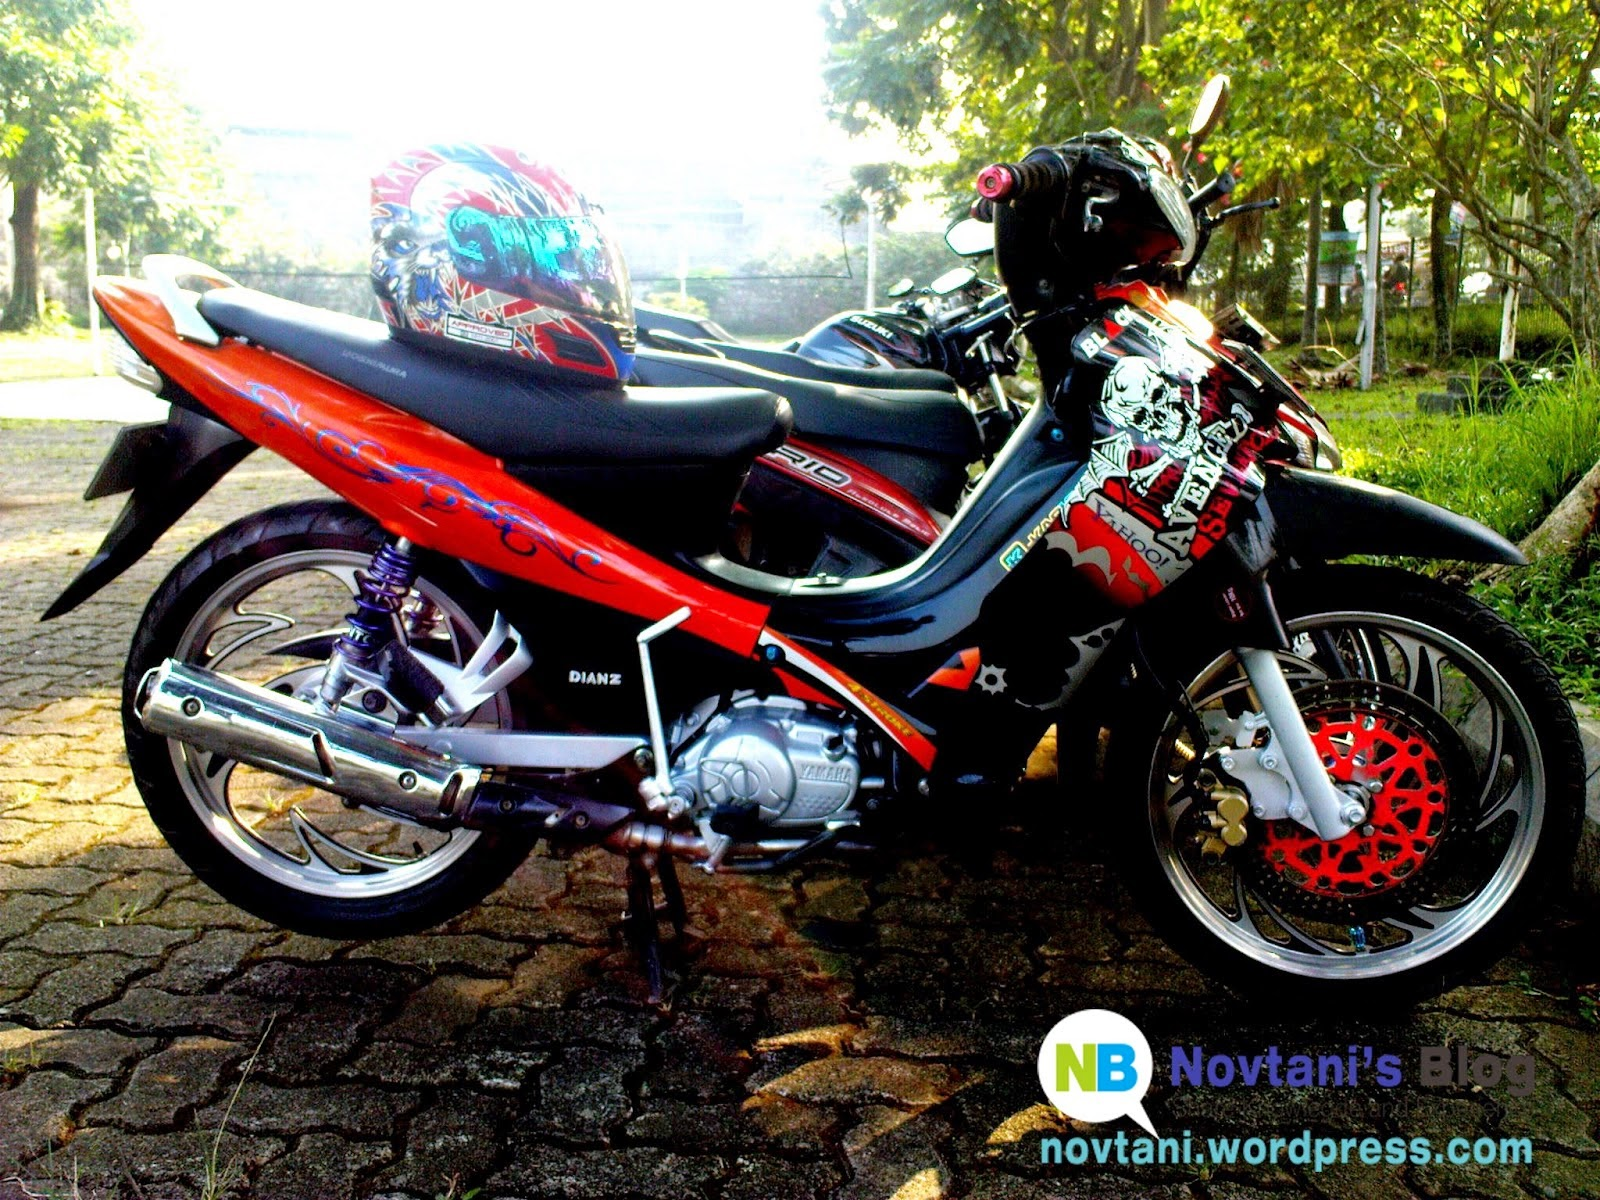 Modifikasi Mesin Motor Yamaha Jupiter Z